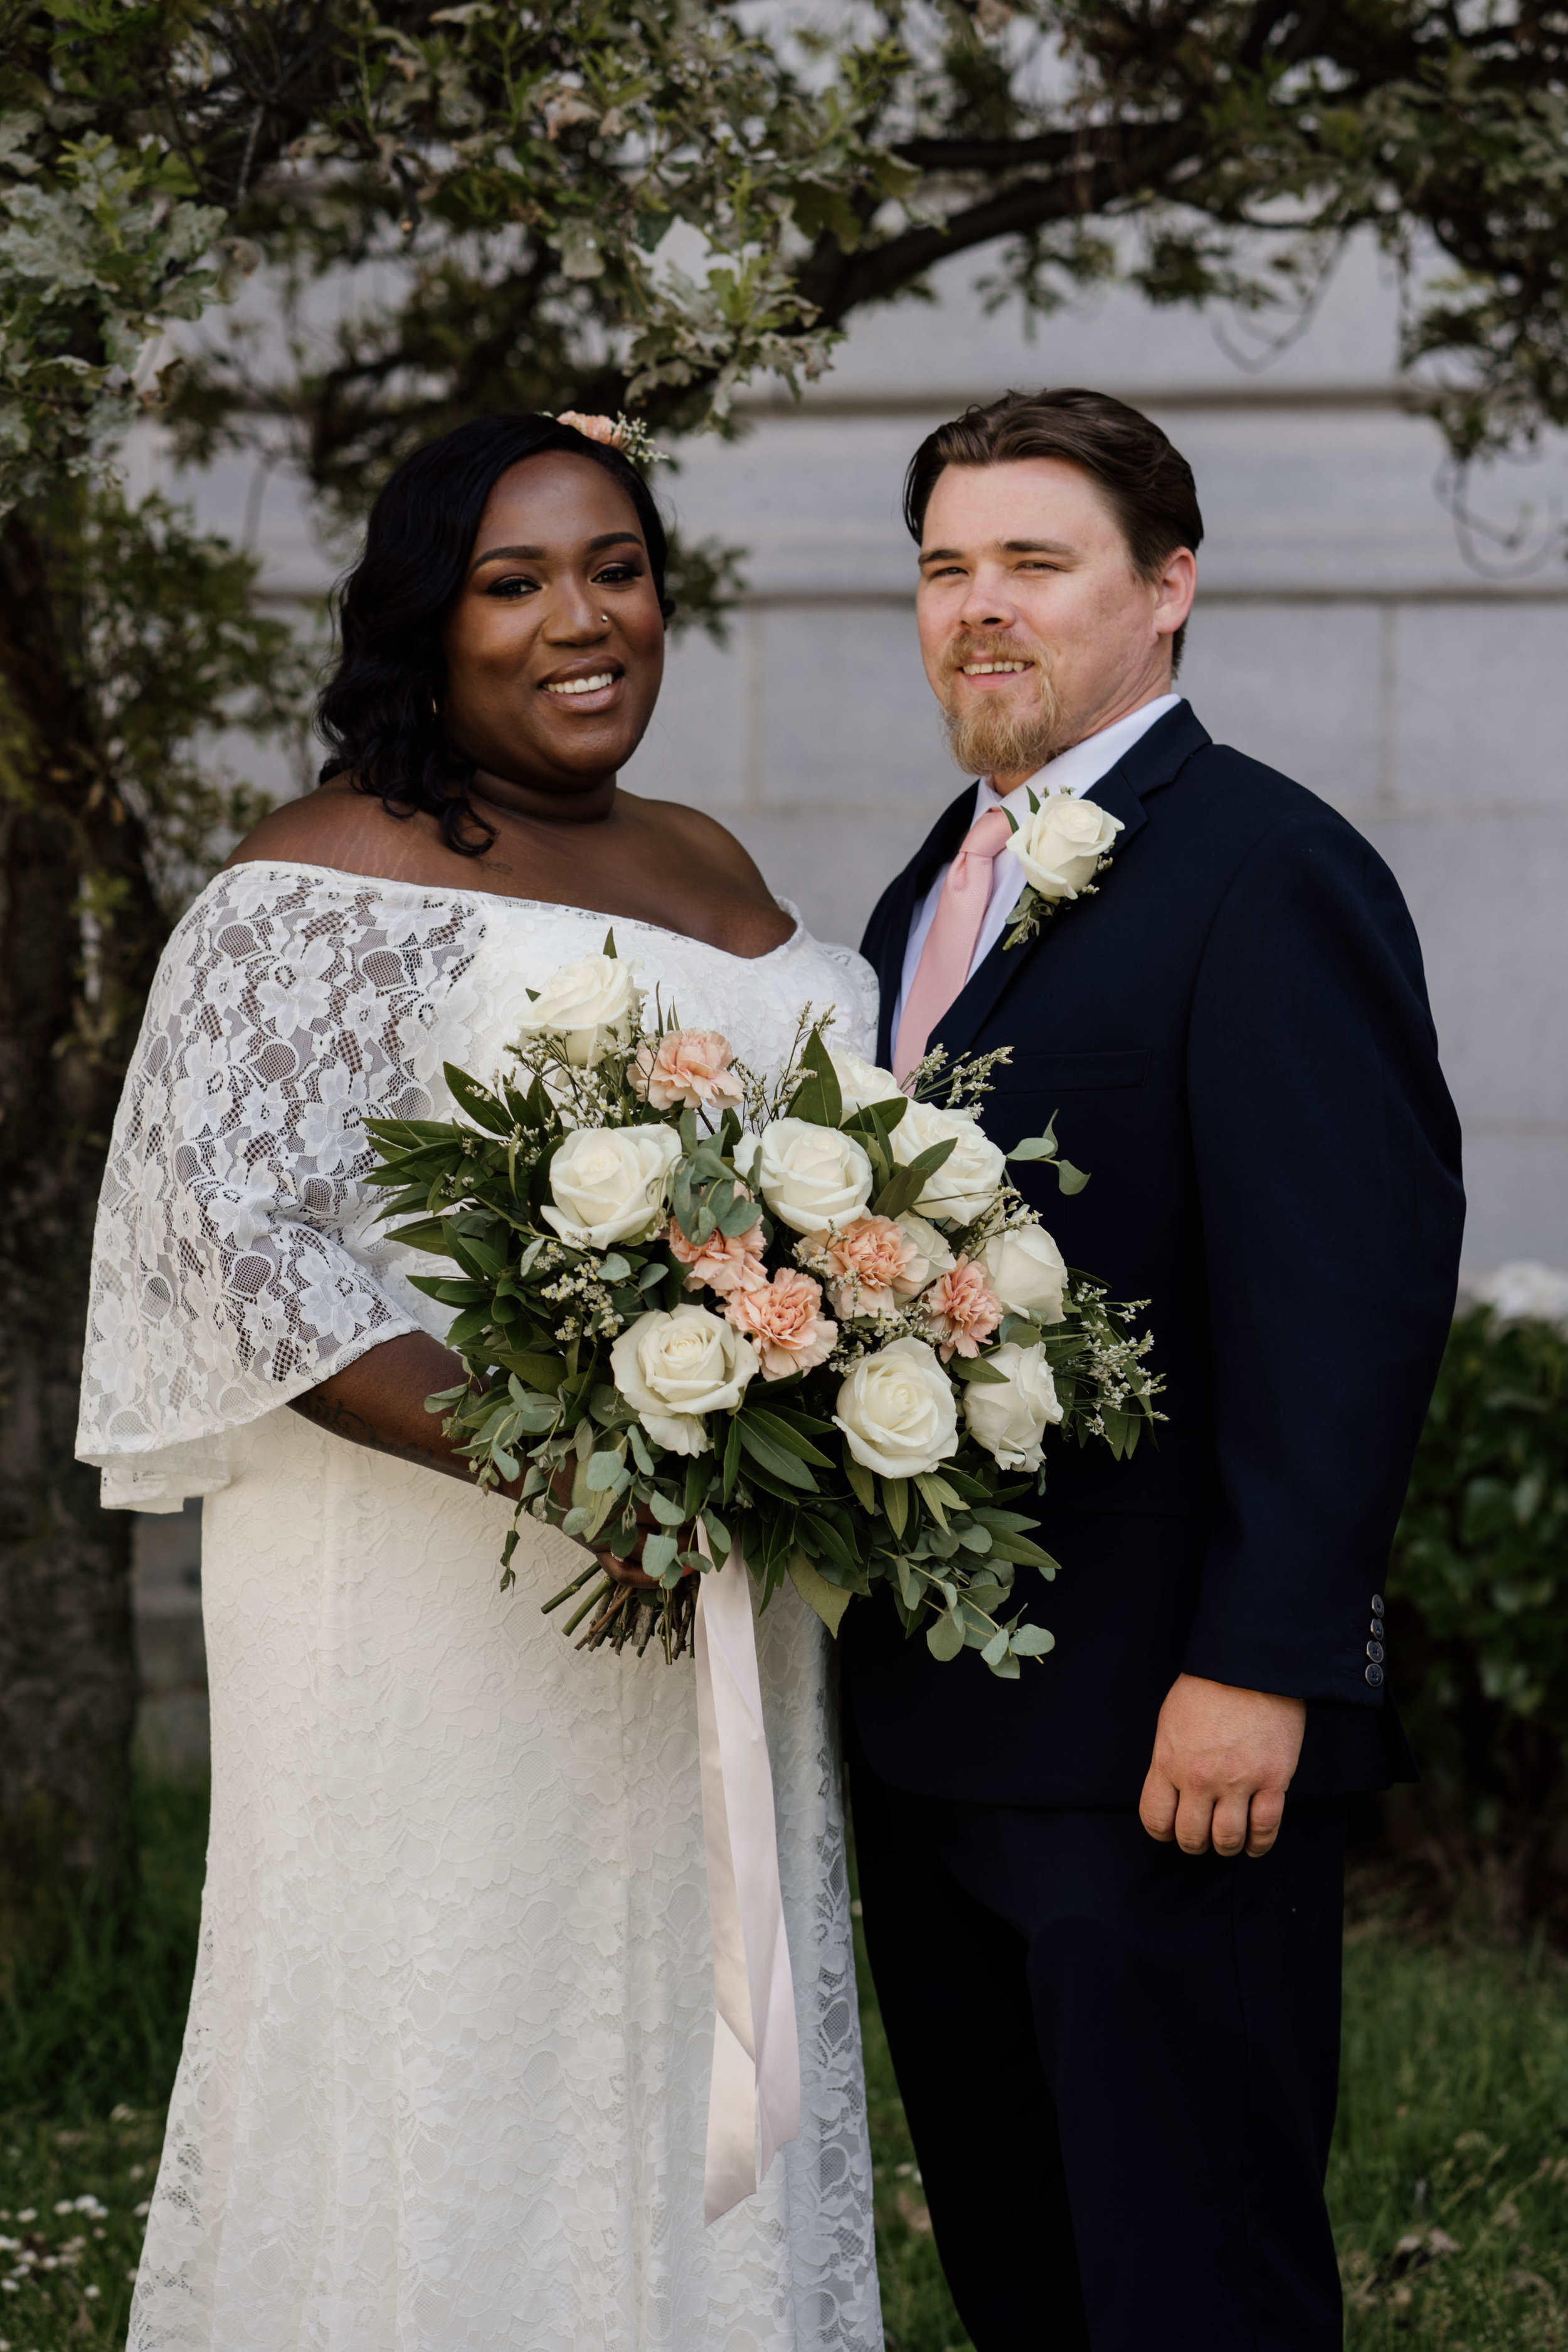 """Featured Wedding - Ebony and Lee's romantic court house elopement!Meet Ebony and Lee, their story is a classic 21st century love story I will get to in a minute. Their wedding day was an homage to love, no matter the obstacles.""""Under our Constitution, the freedom to marry, or not marry, a person of another race resides with the individual, and cannot be infringed by the state,"""" - Chief Justice Earl WarrenJune 12th, 2019 marked the 52nd anniversary of The Supreme Courts ruling on Loving v. Virginia.In a unanimous decision, the justices found that Virginia's interracial marriage law violated the 14th Amendment to the Constitution.Keep Reading…"""